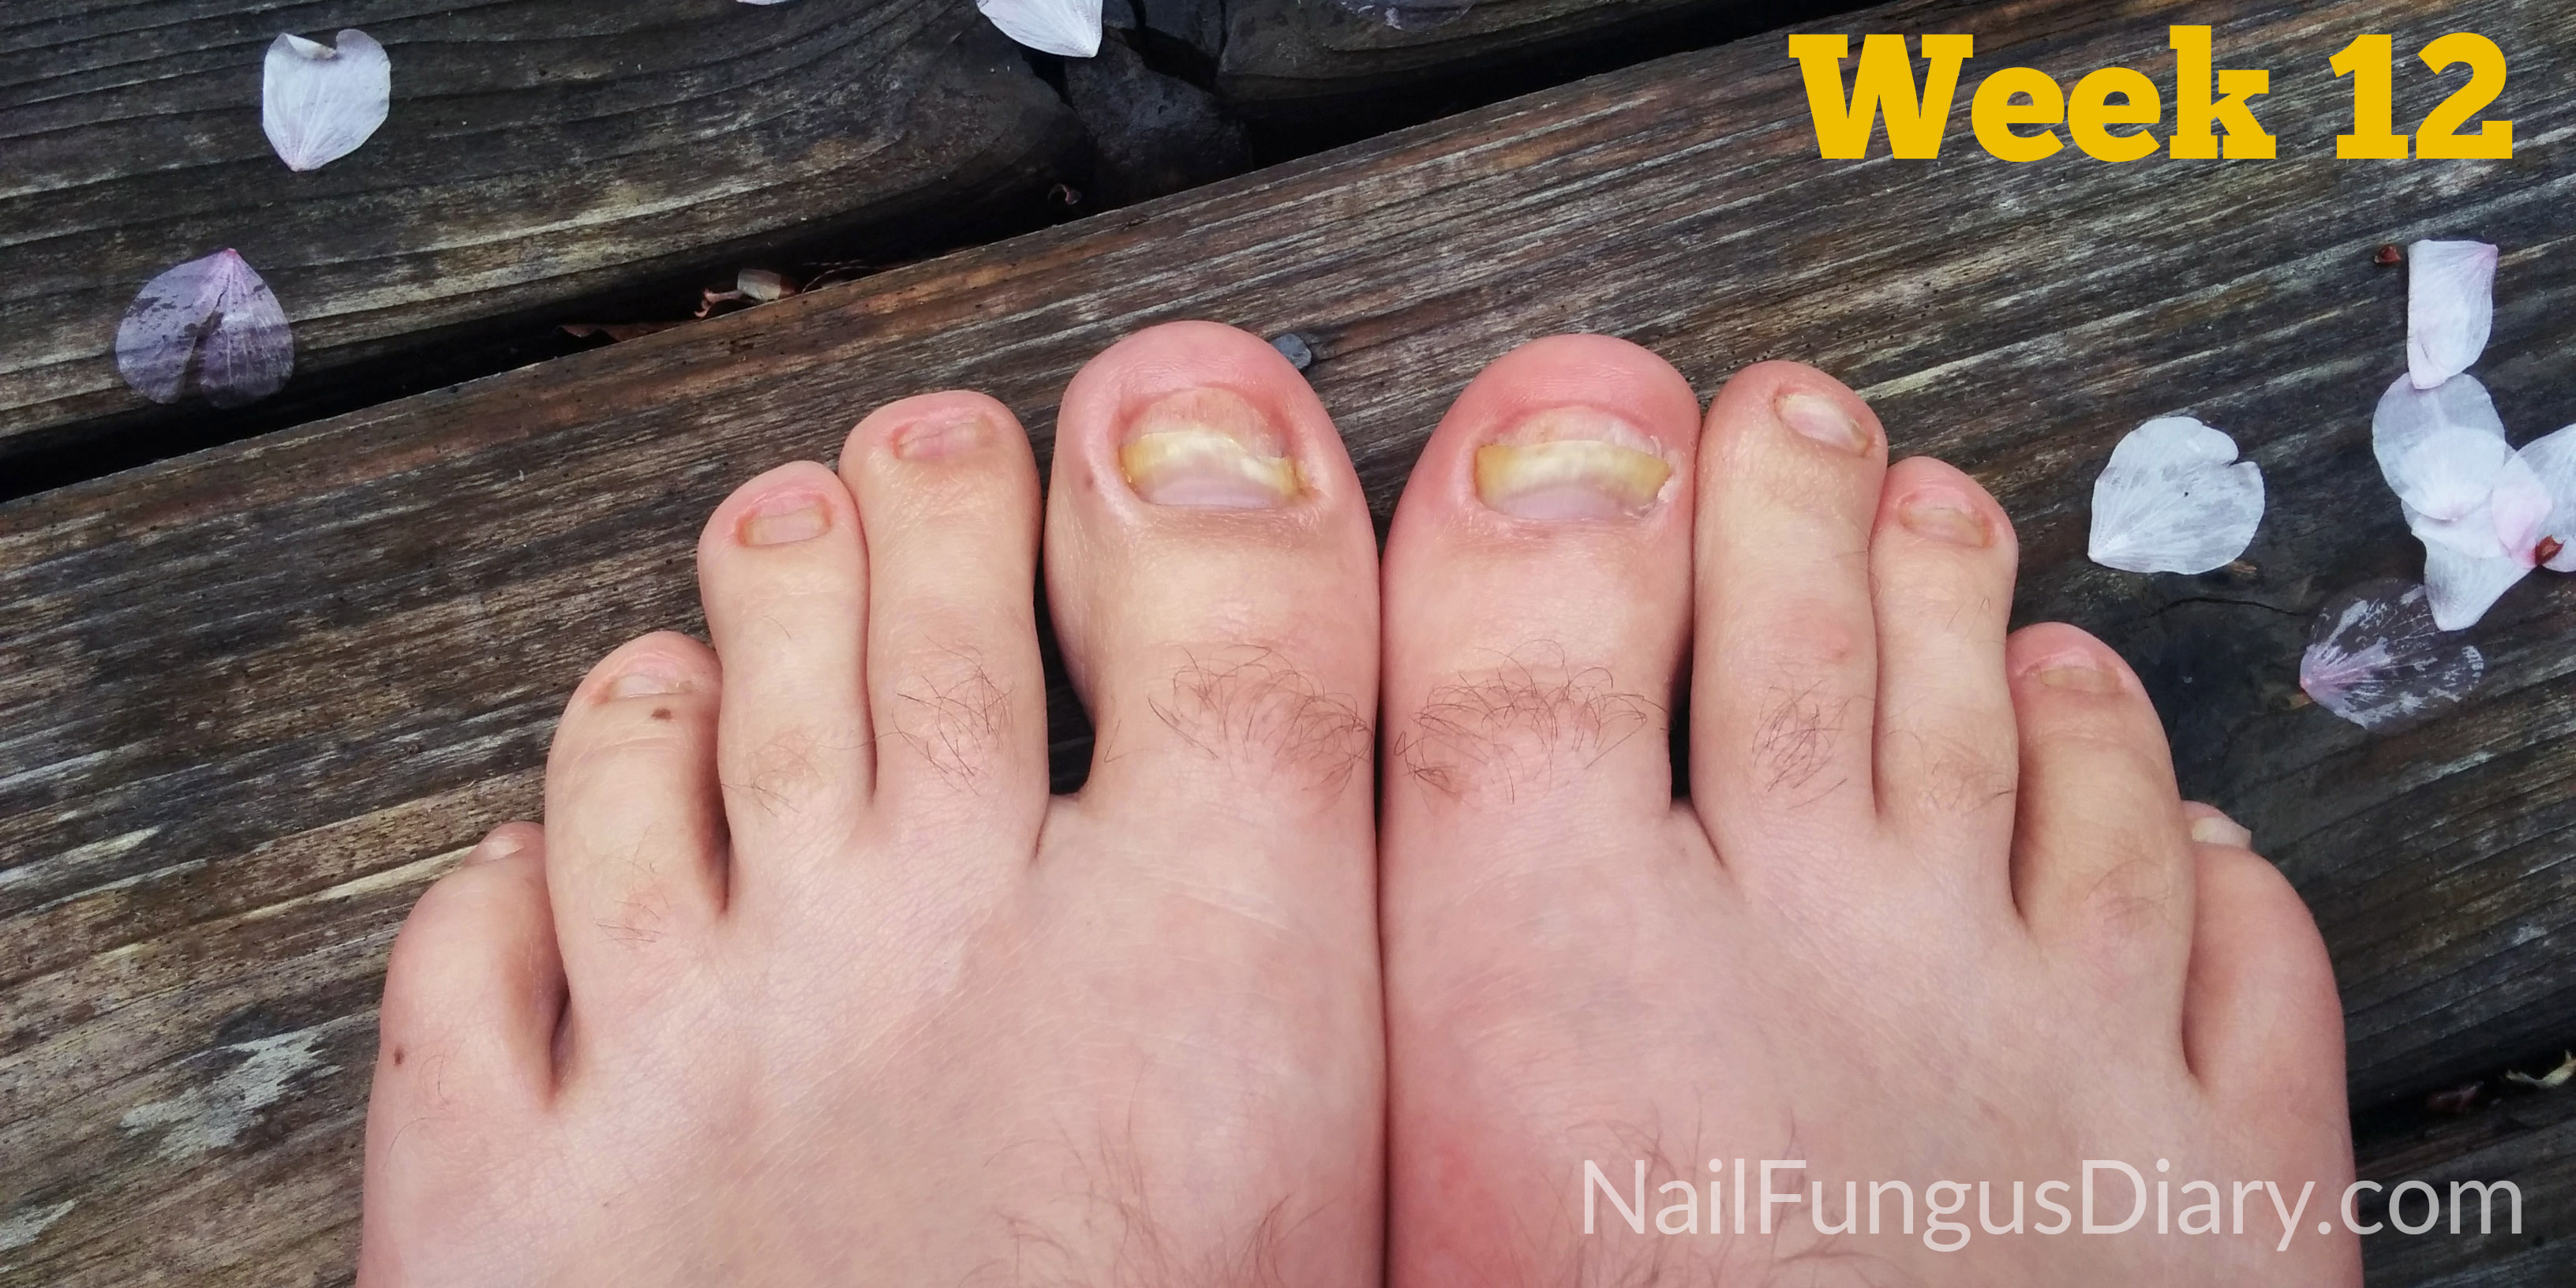 Nail Fungus: What You Need To Know - Toxic Skies (Forum)